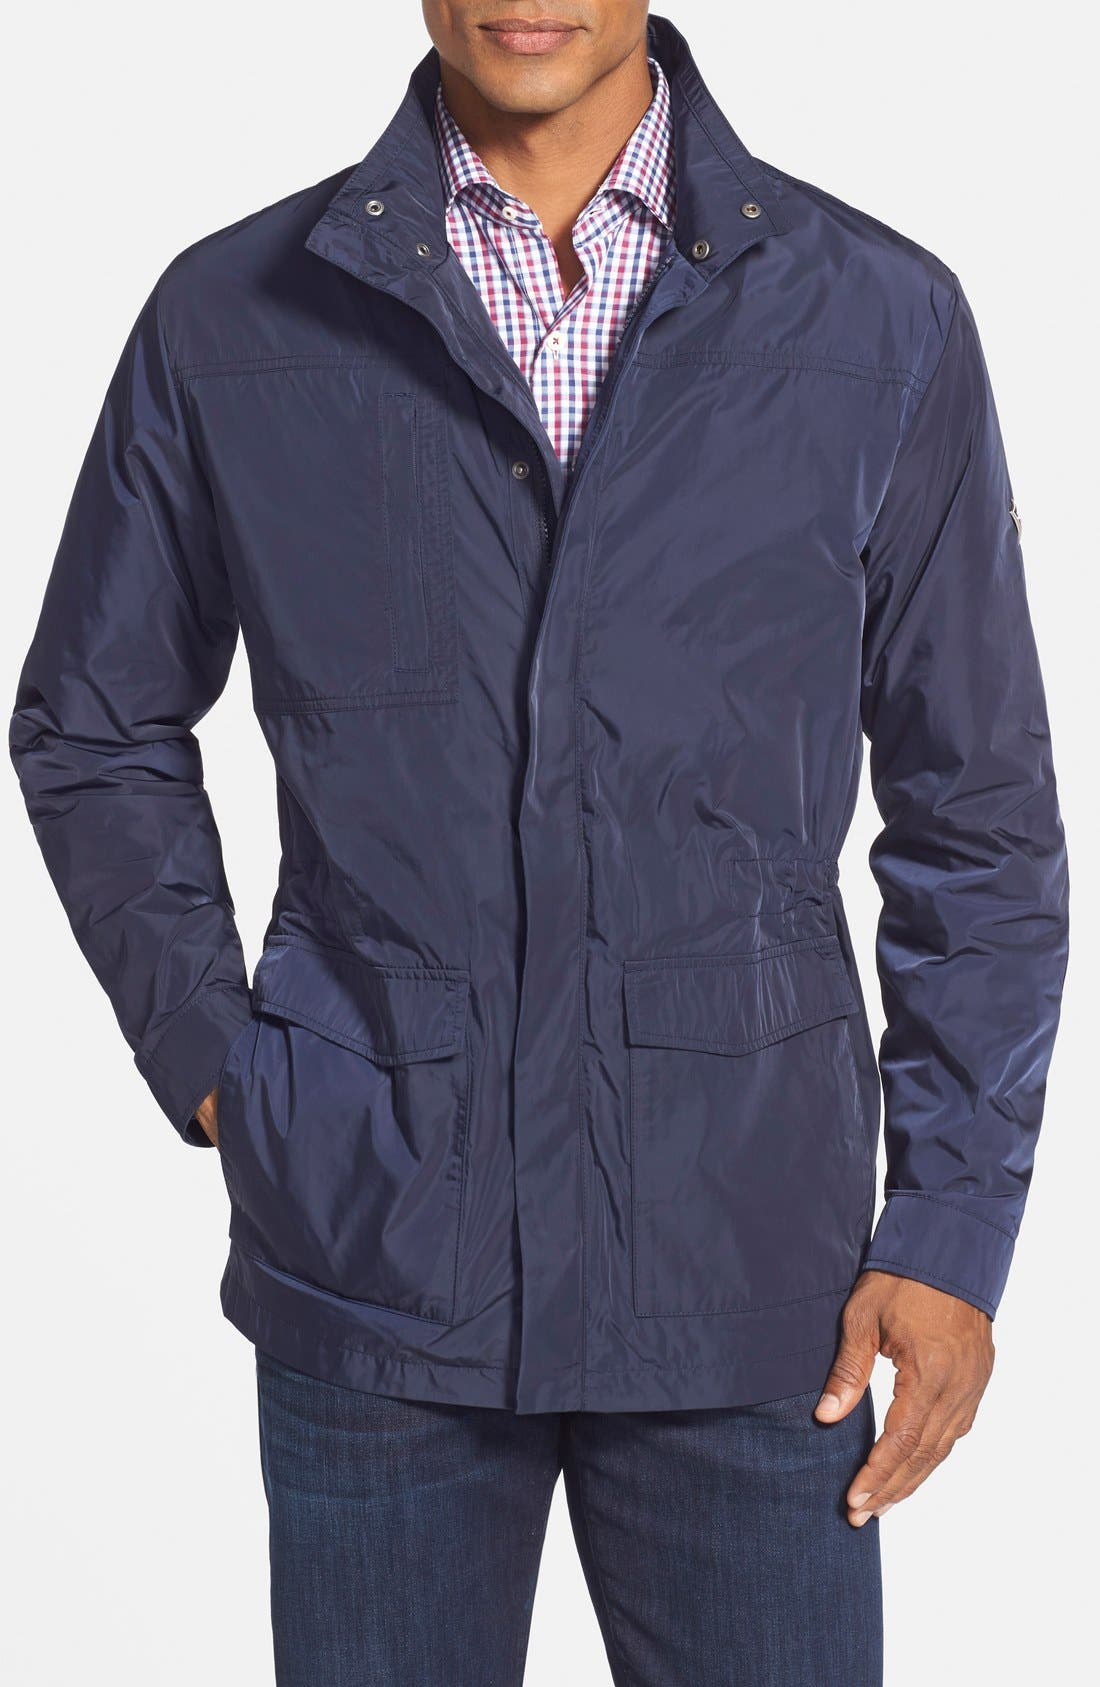 Birch Bay Water Resistant Jacket,                         Main,                         color, 493